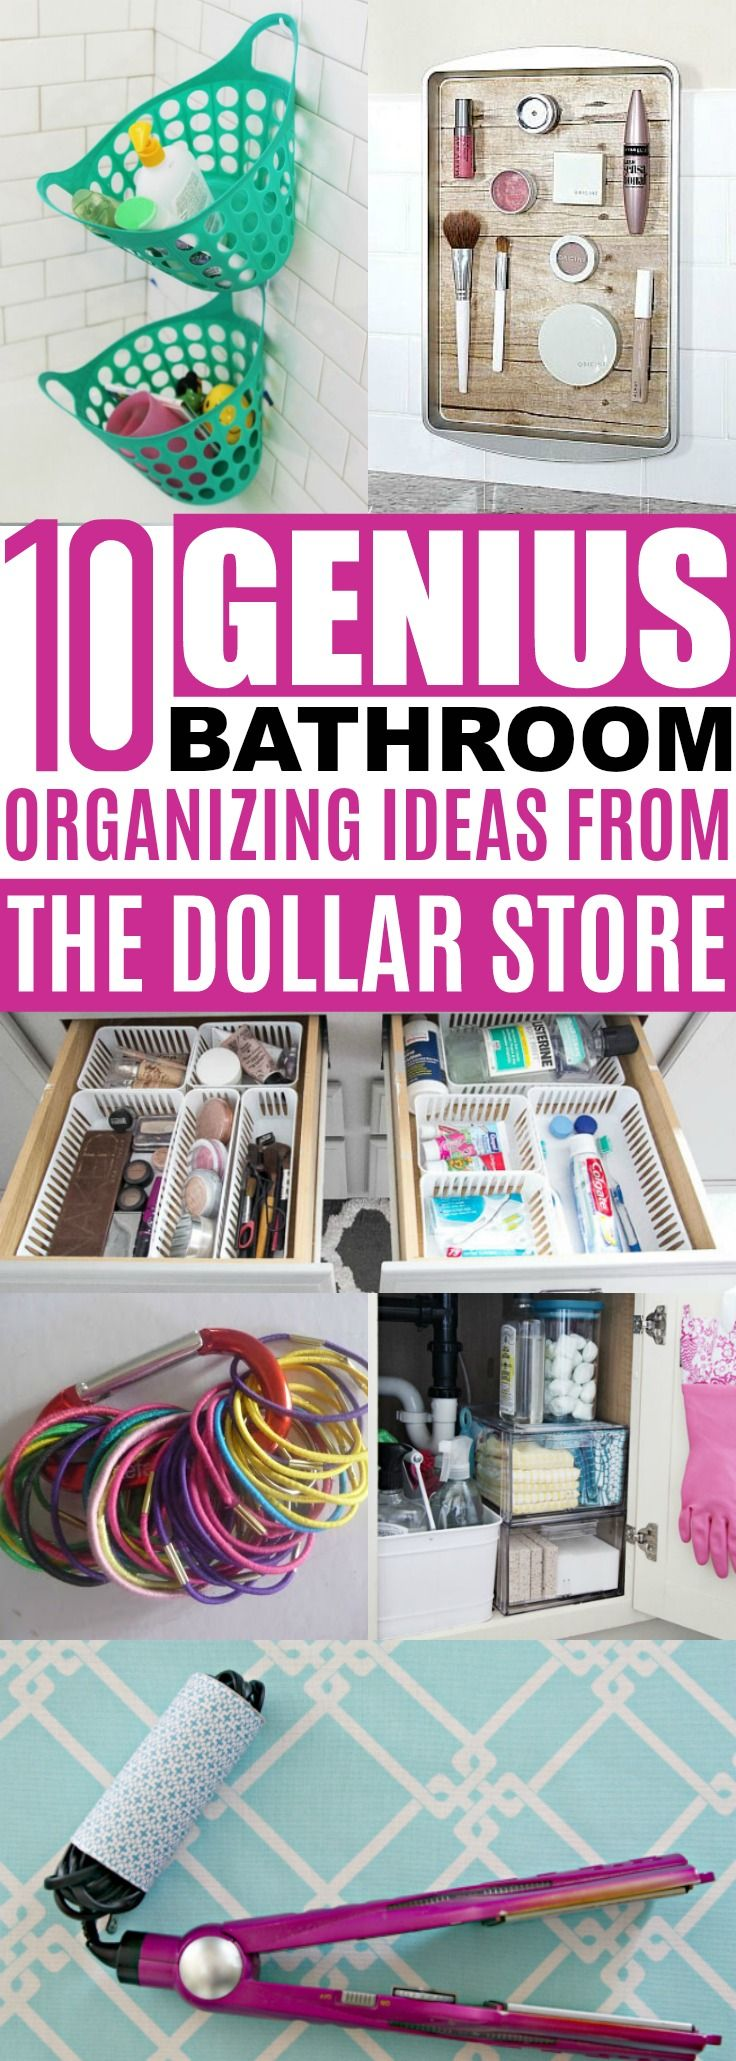 10 Amazing Bathroom Organization Ideas From The Dollar Store